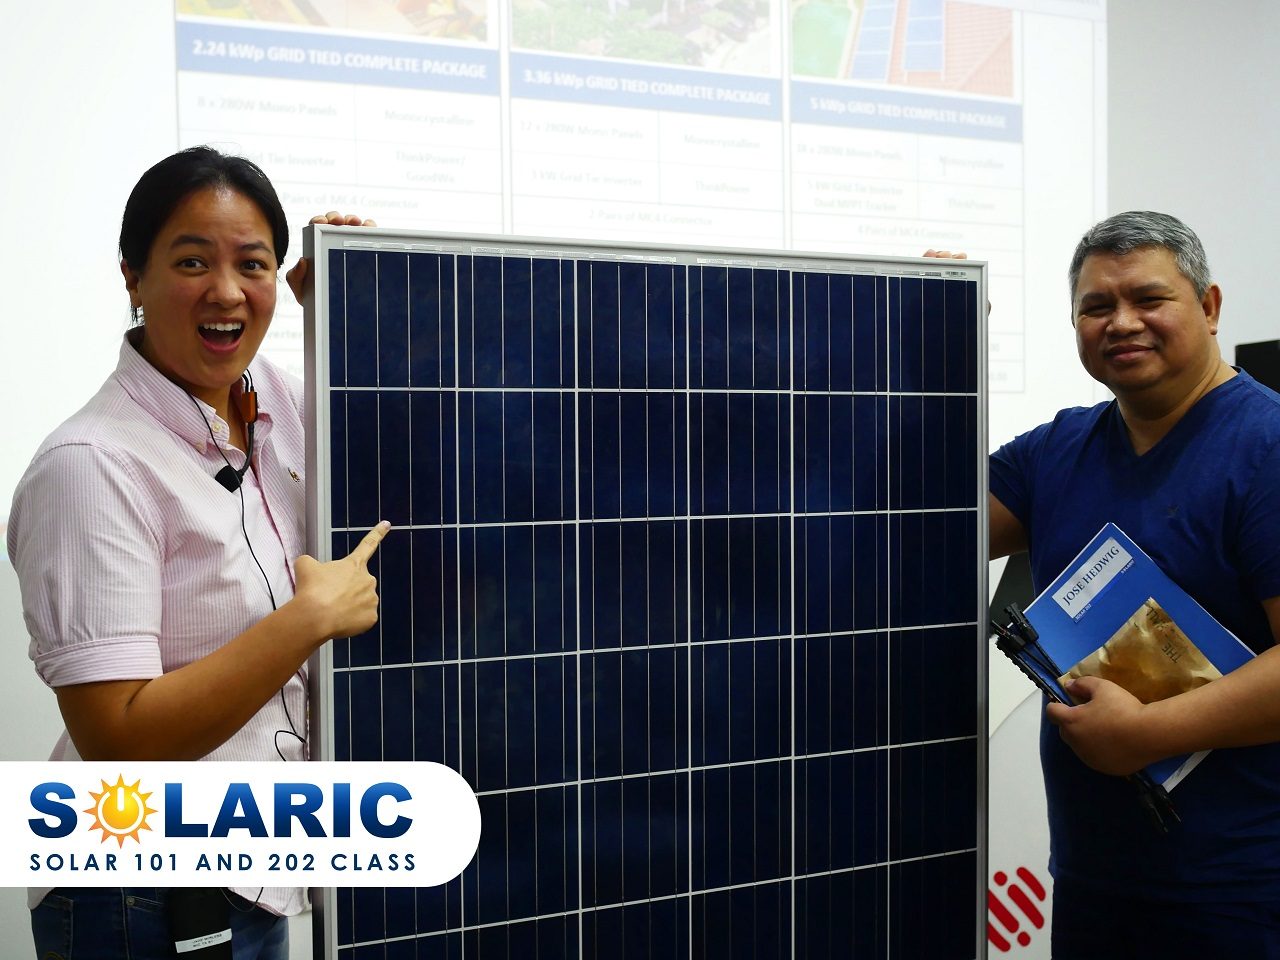 Two professionals at a solar class